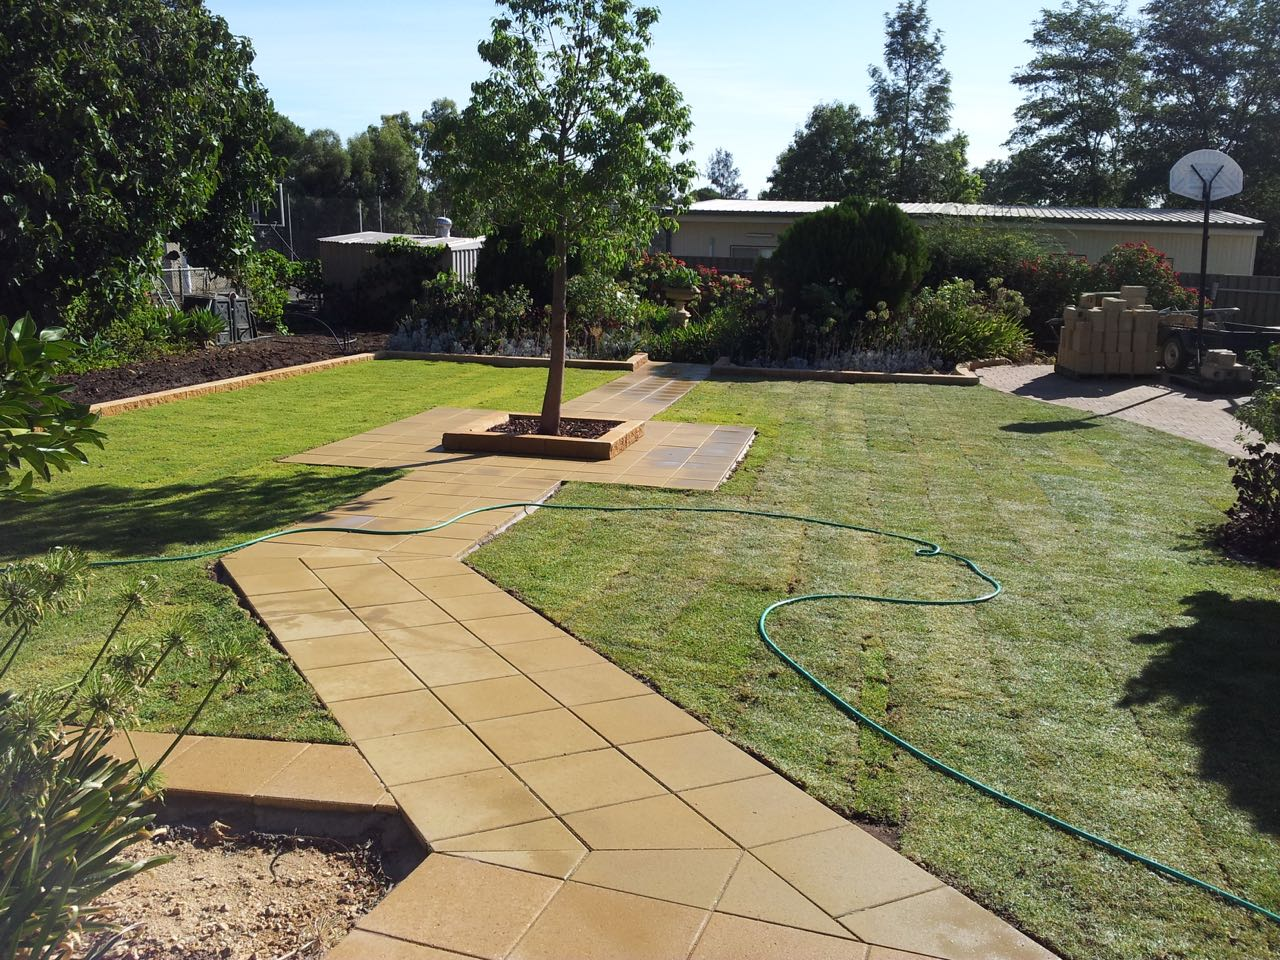 Gawler East - Paved Pathway In Lush Green Lawn